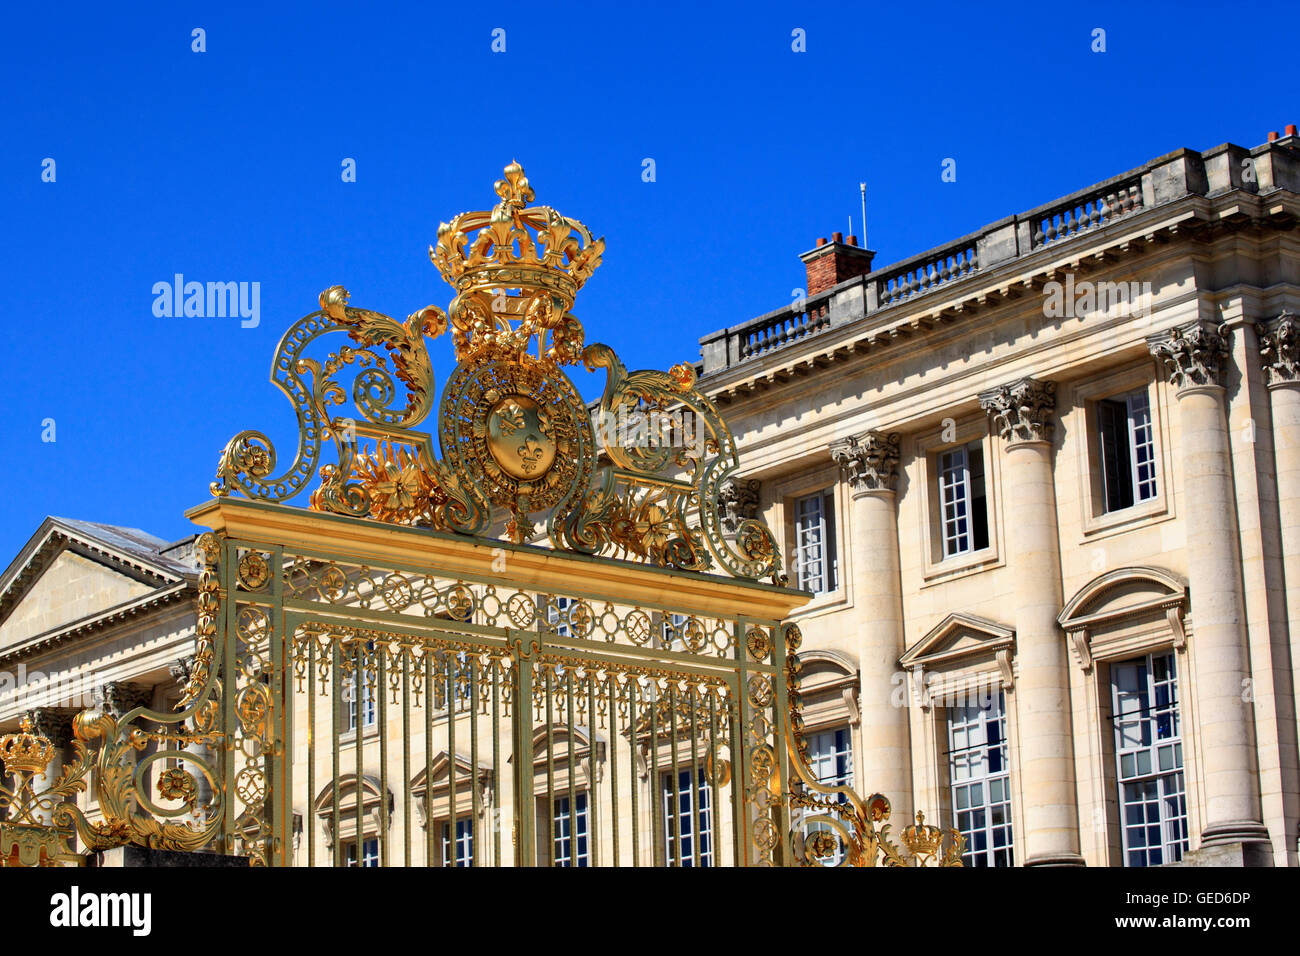 The Gate Of Honour at the Palace Of Versailles, France, Europe Stock Photo